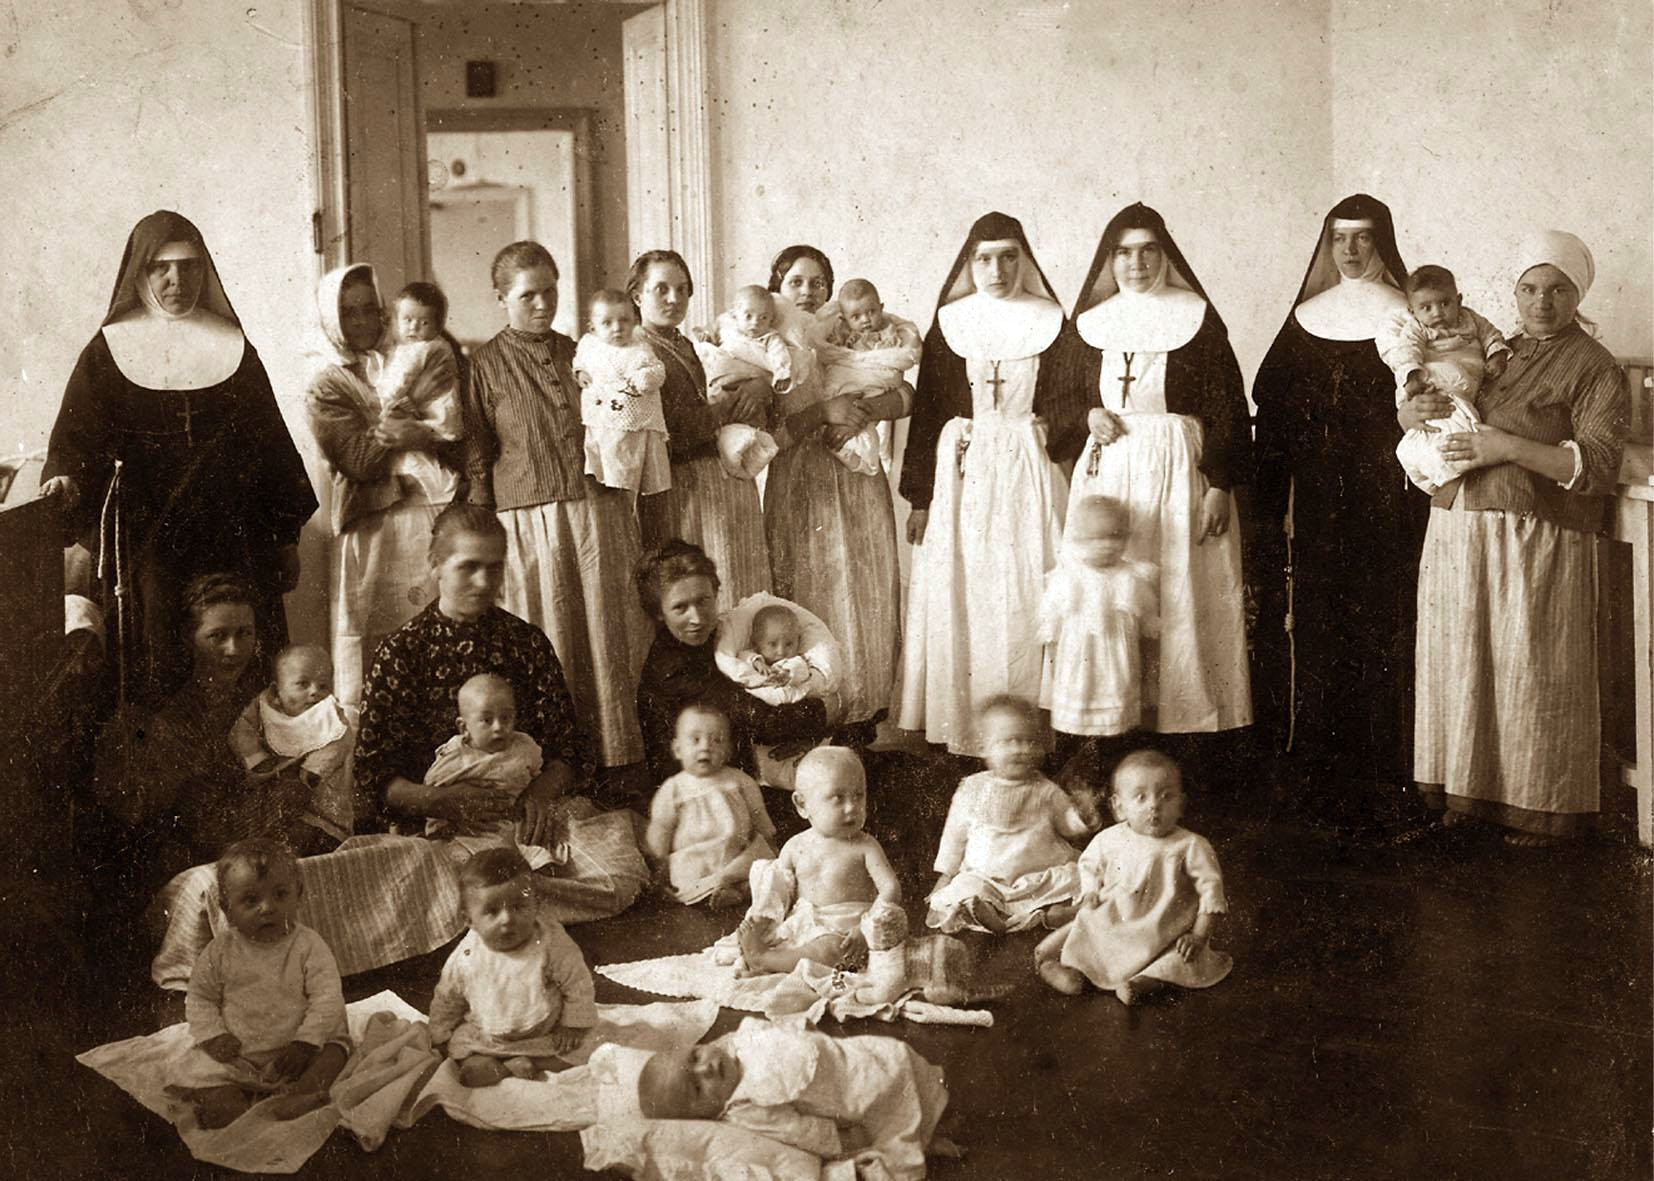 The Poor and the Pregnant in Lviv in the late 19th century: Survival Experiences